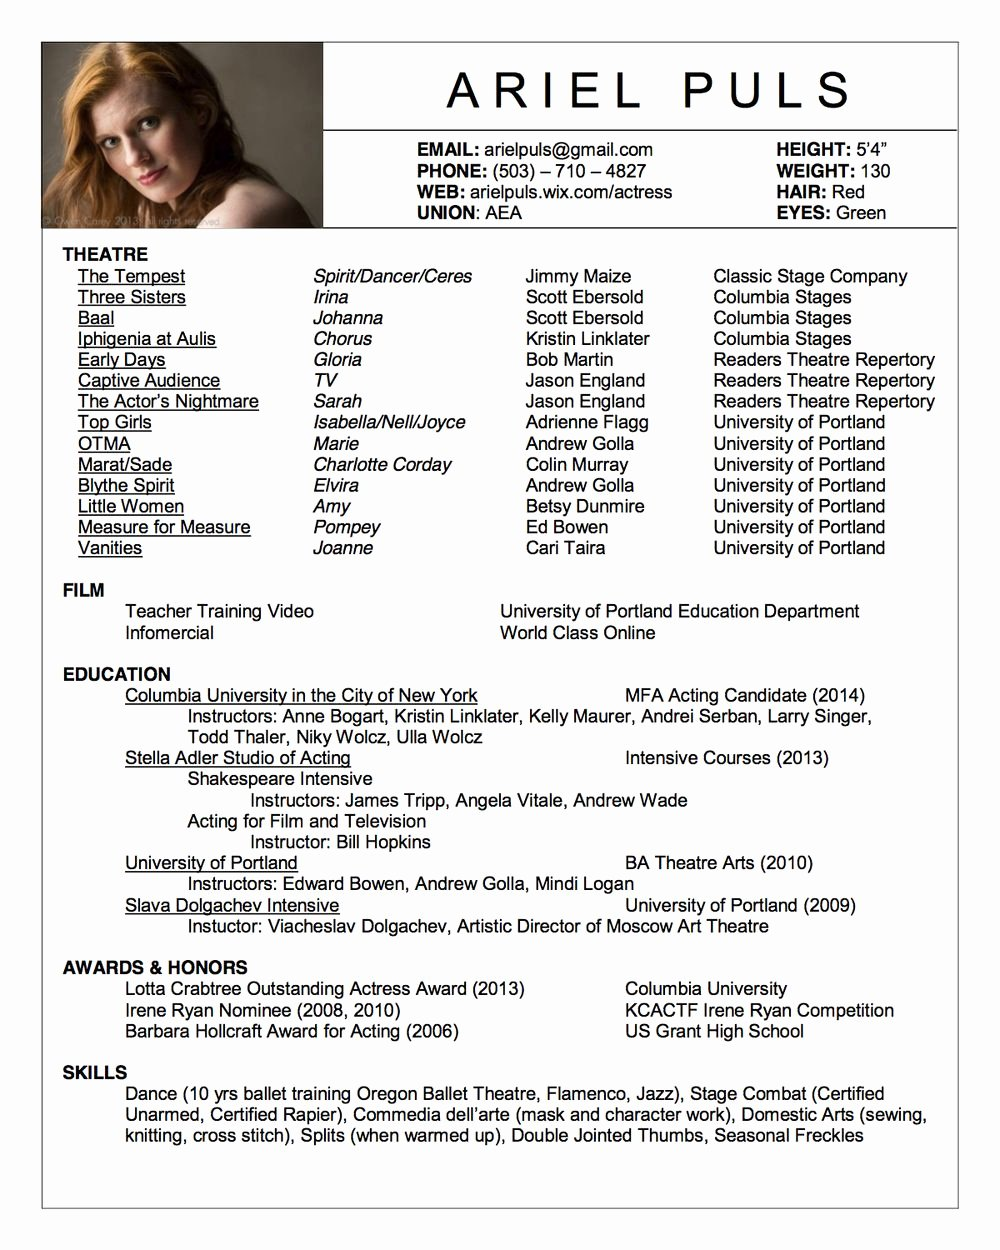 Theatre Resume Template Google Docs Inspirational Acting Resume Google Search Acting Class Stuff